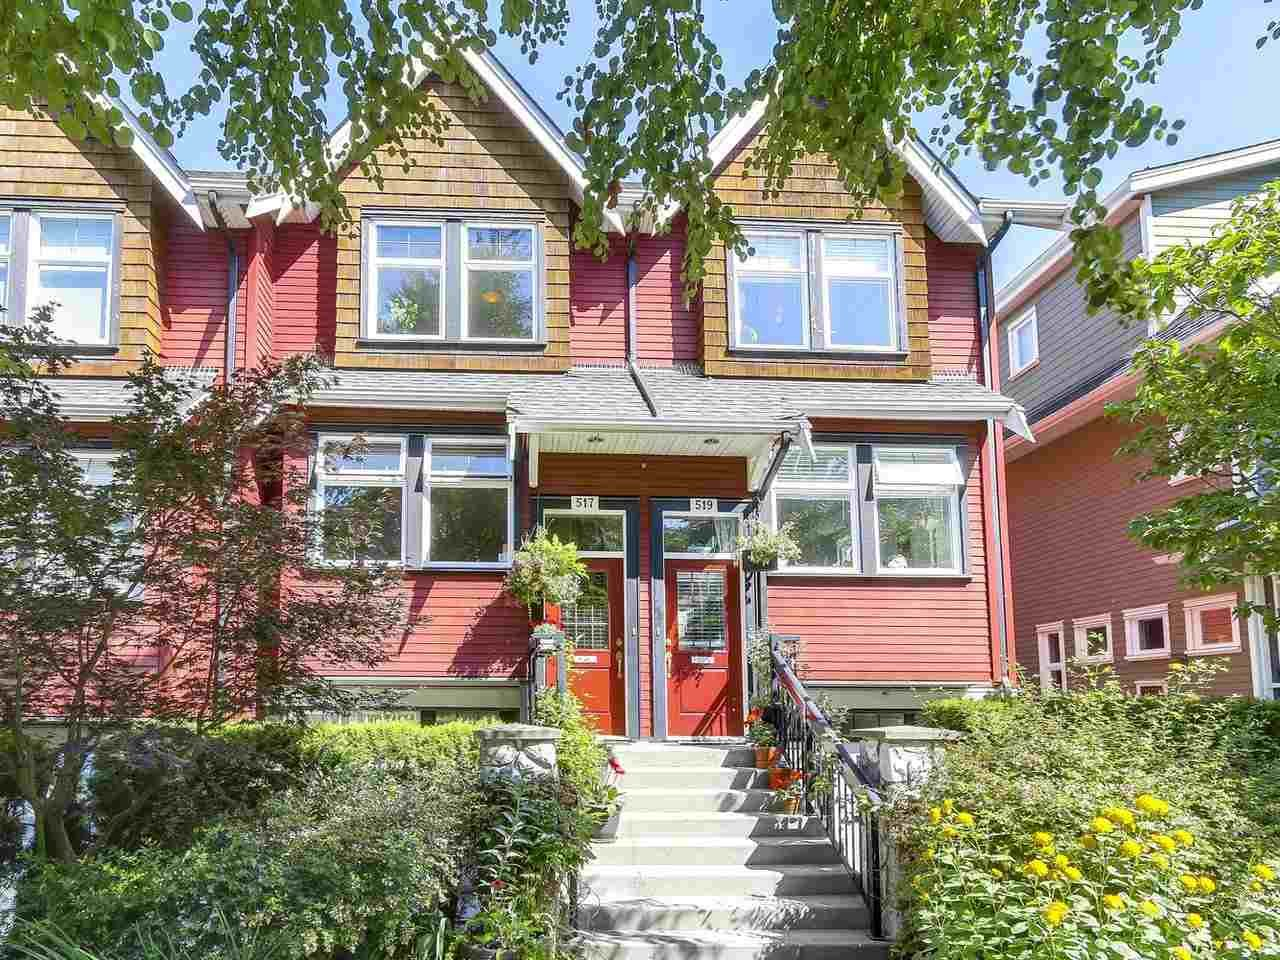 """Main Photo: 517 E 7TH Avenue in Vancouver: Mount Pleasant VE Townhouse for sale in """"THE VANTAGE"""" (Vancouver East)  : MLS®# R2203934"""